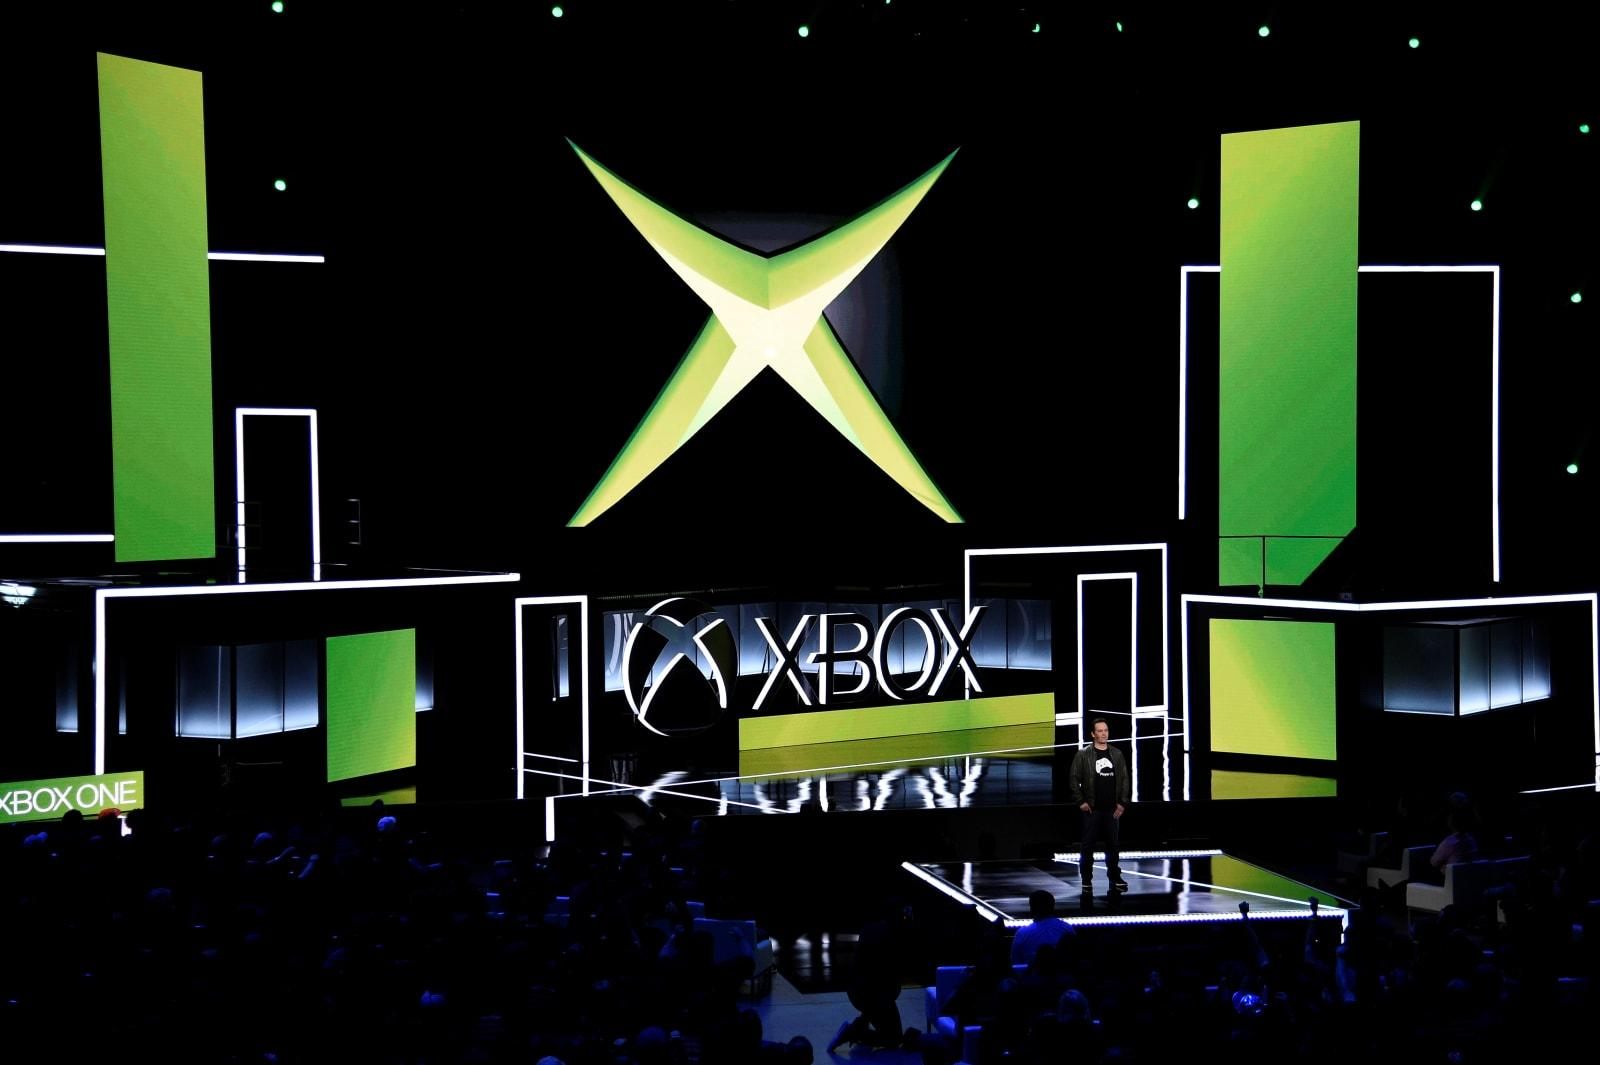 Play the first set of original Xbox games on the Xbox One tomorrow | Engadget